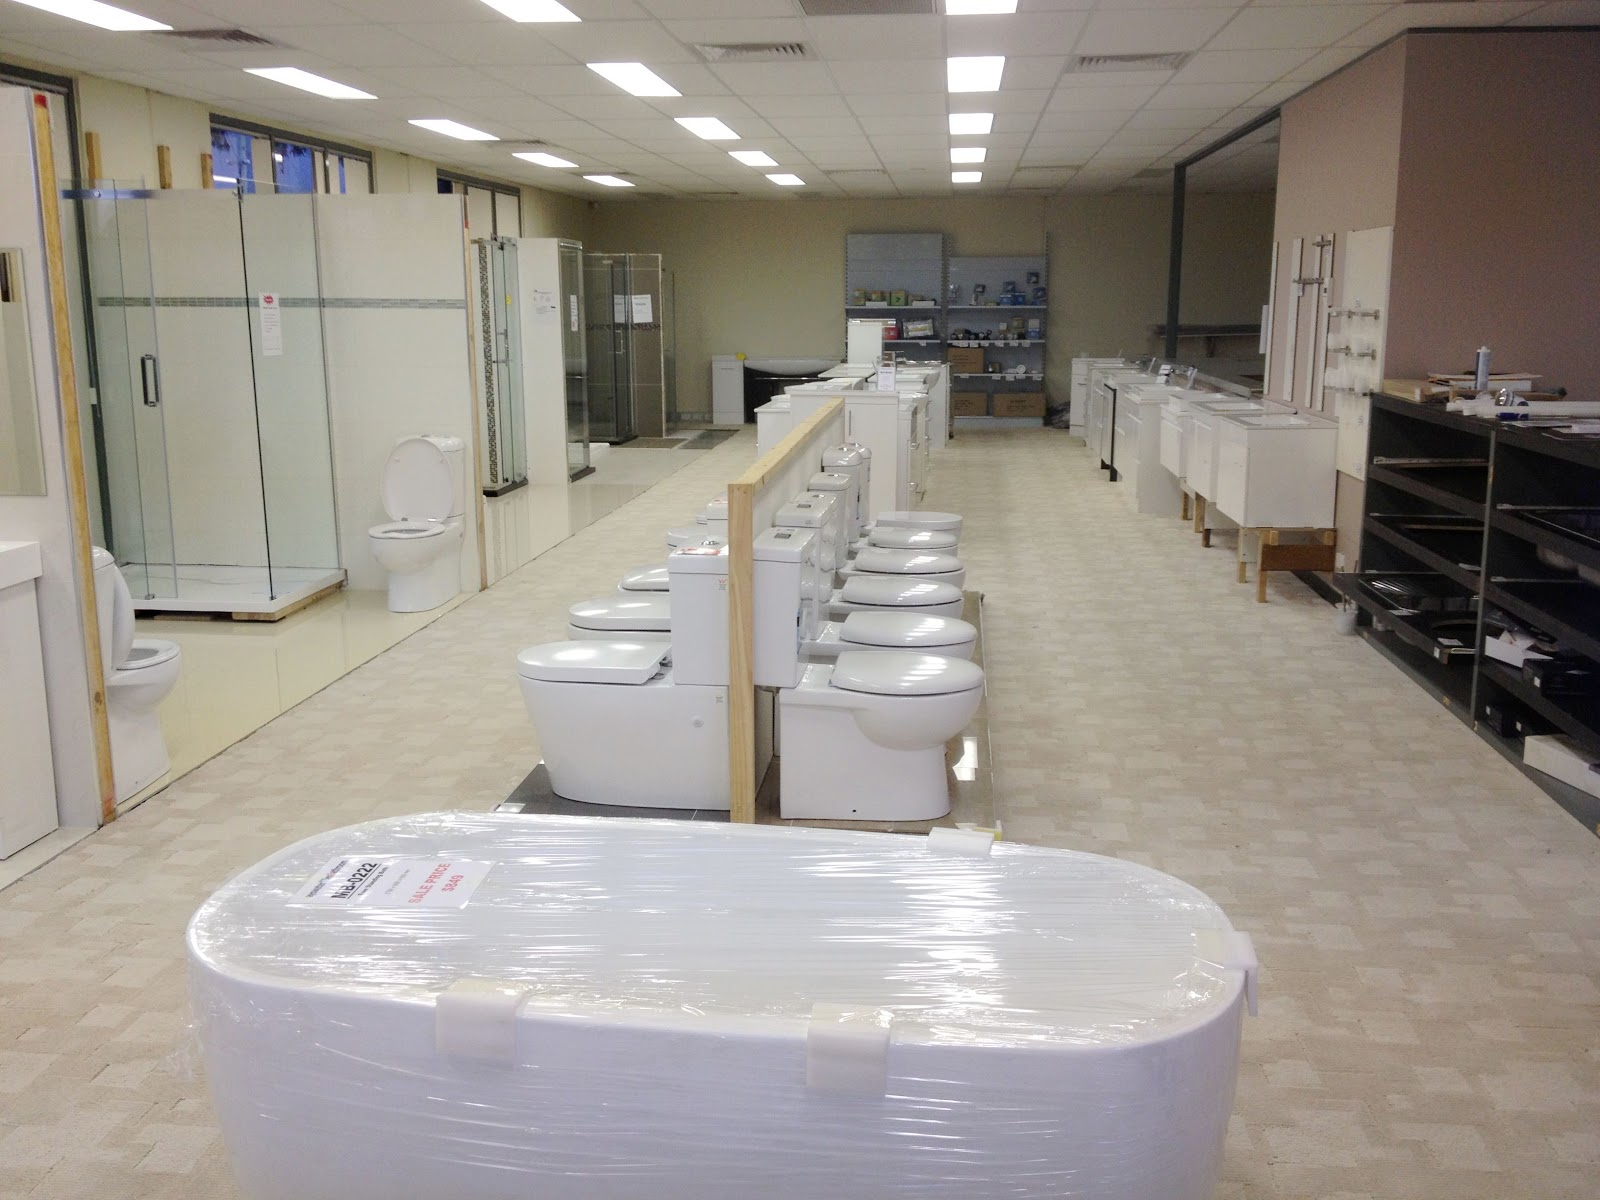 Introducing bayswater tile bathroom shop bayswater tile bathroom shop showroom Bathroom tile stores